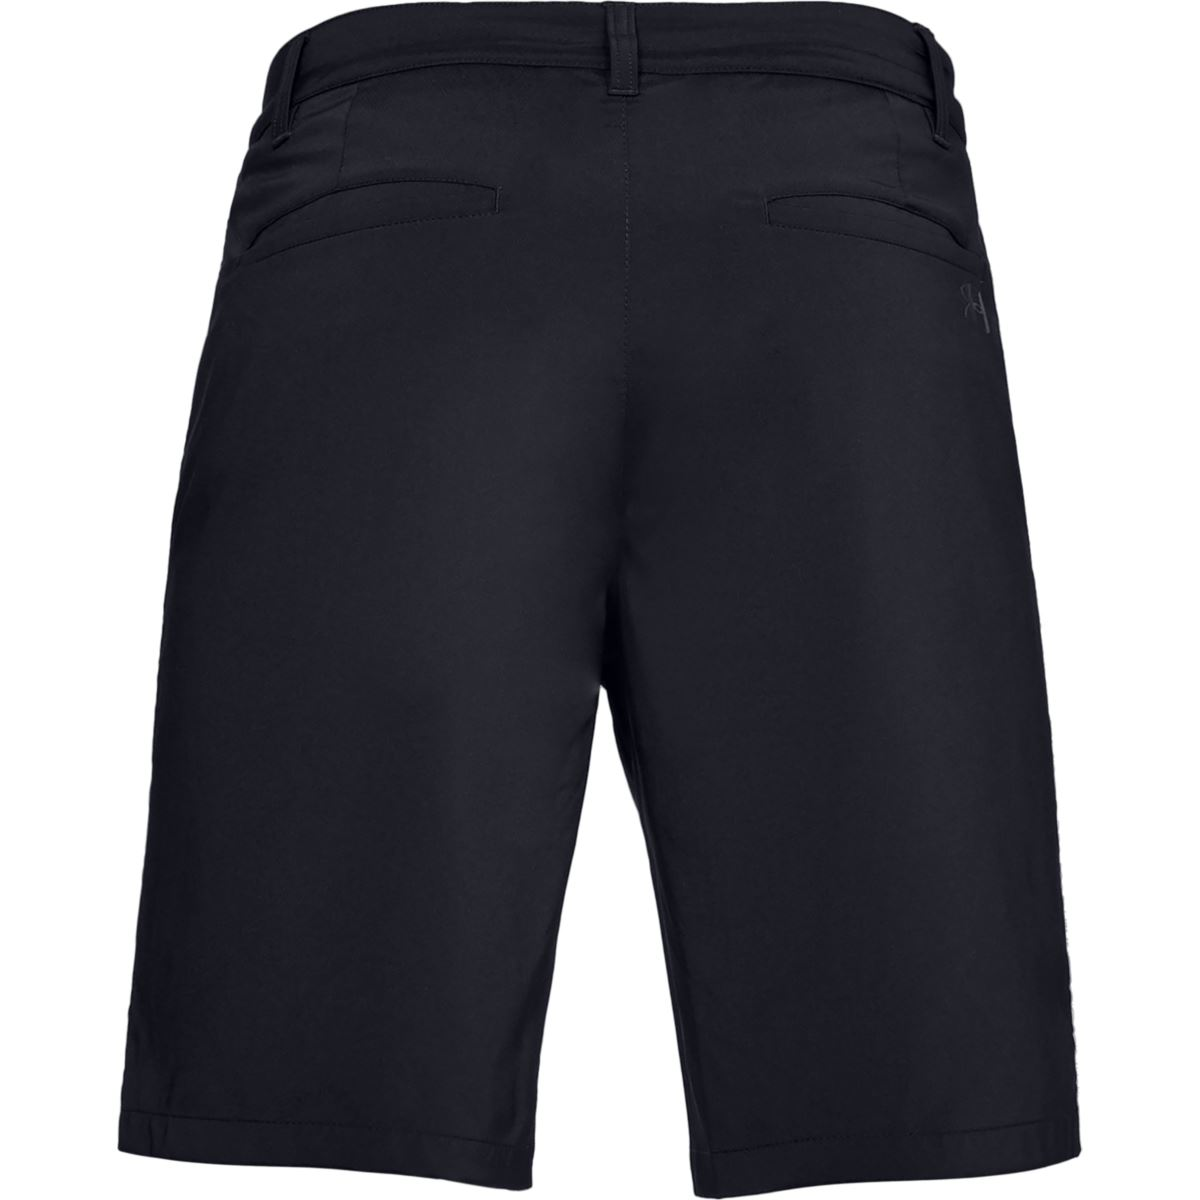 Under-Armour-2019-UA-Mens-EU-Tech-Stretch-Tapered-Fitted-Golf-Shorts thumbnail 3